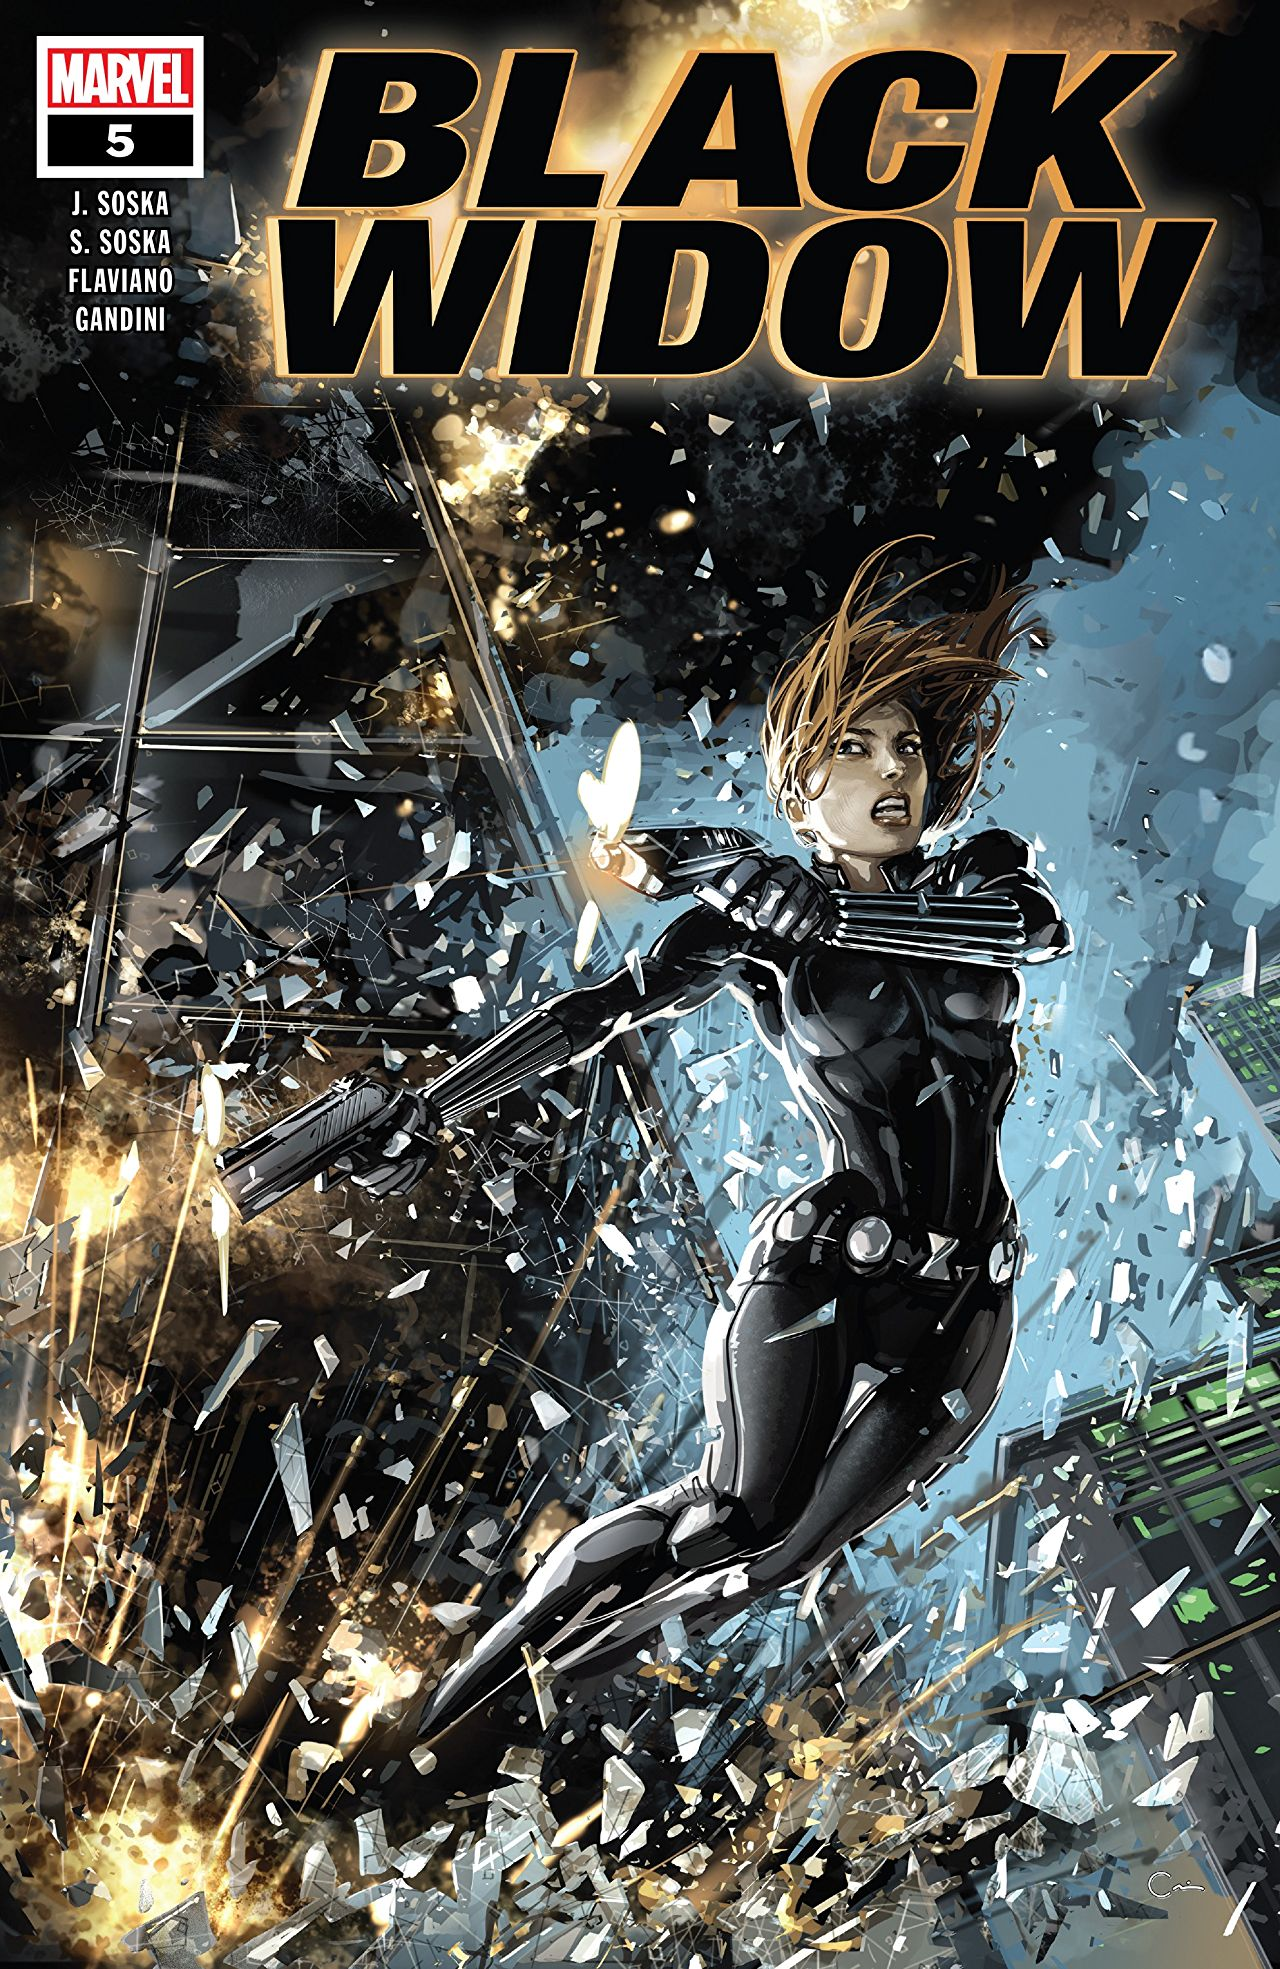 Cover art by Clayton Crain